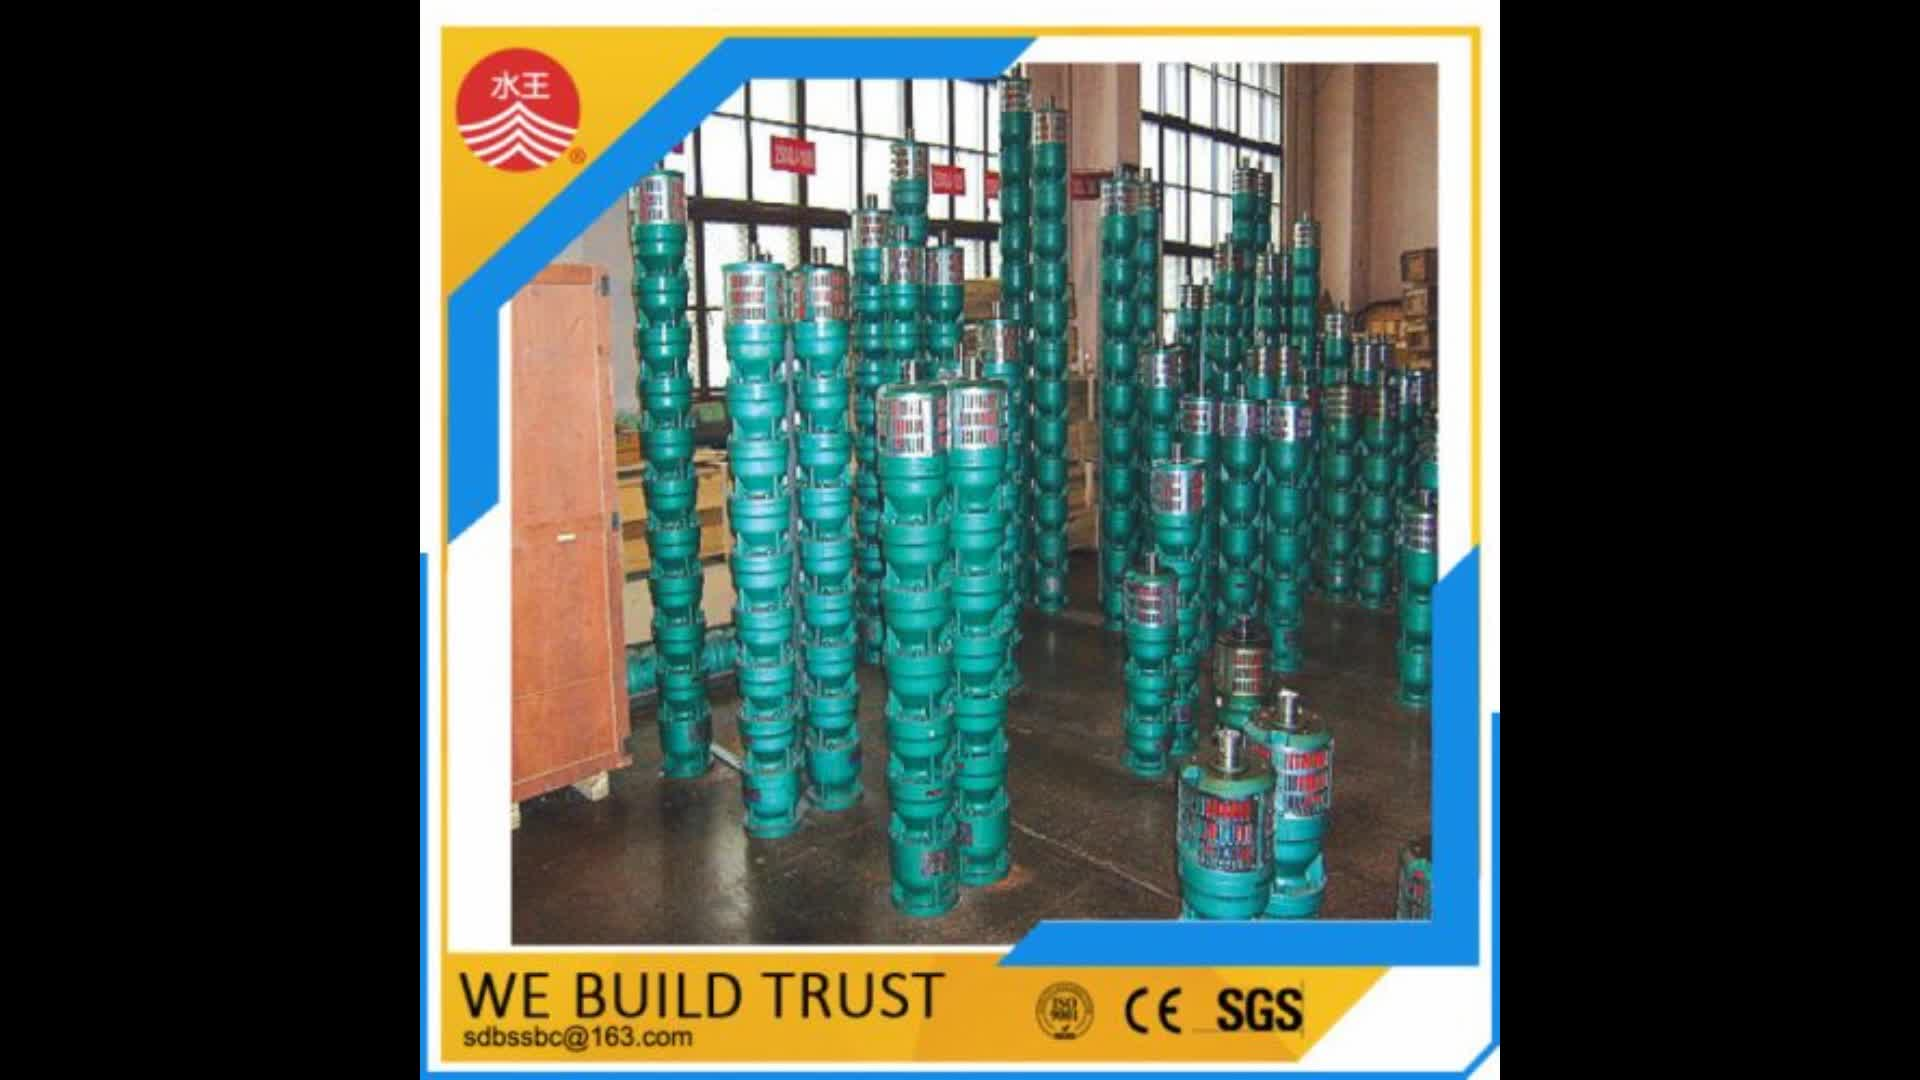 Big flow rate well submersible pump